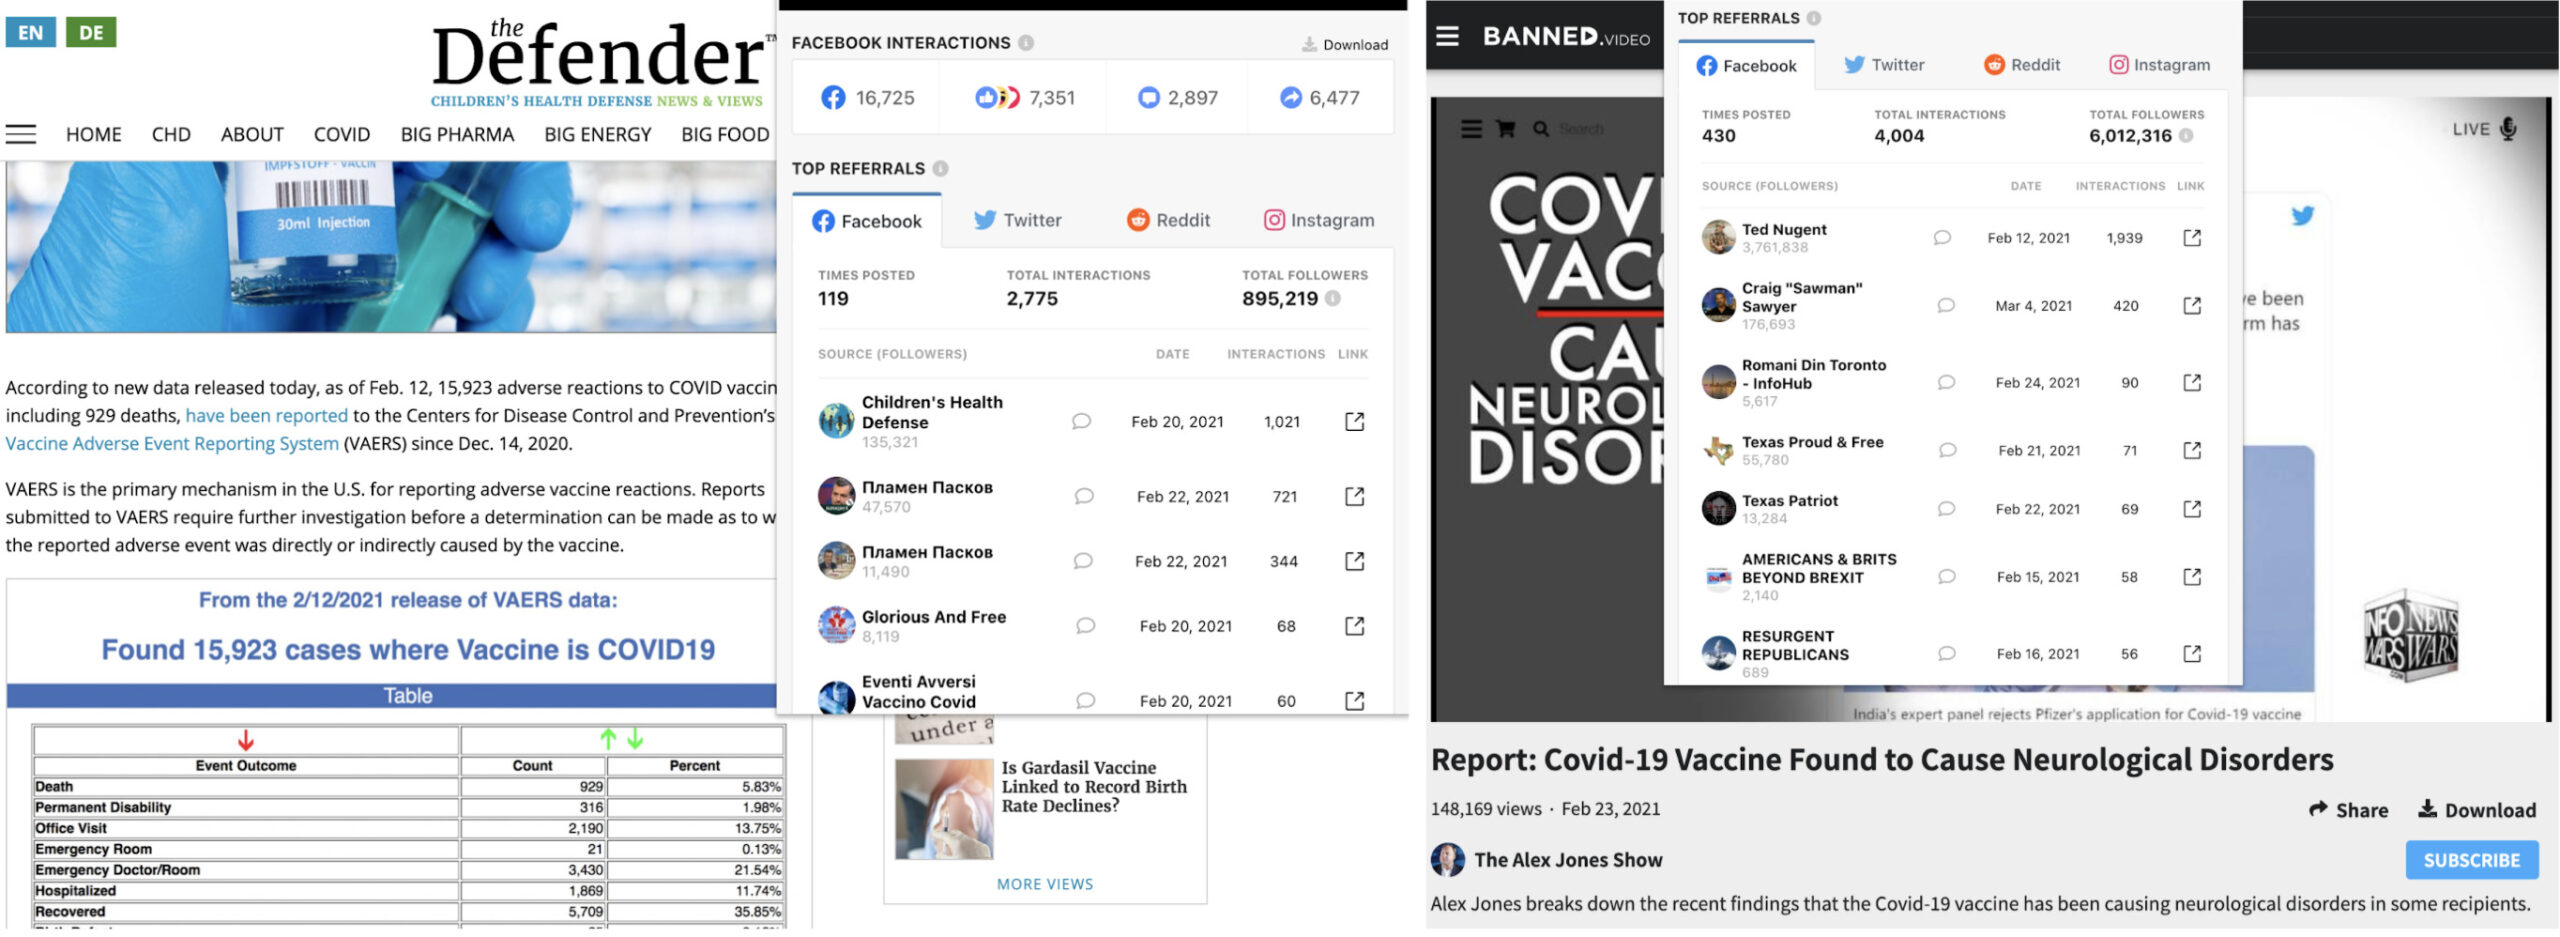 CrowdTangle's Link Checker tool shows social media shares of some misleading links. Screenshots by Carlotta Dotto